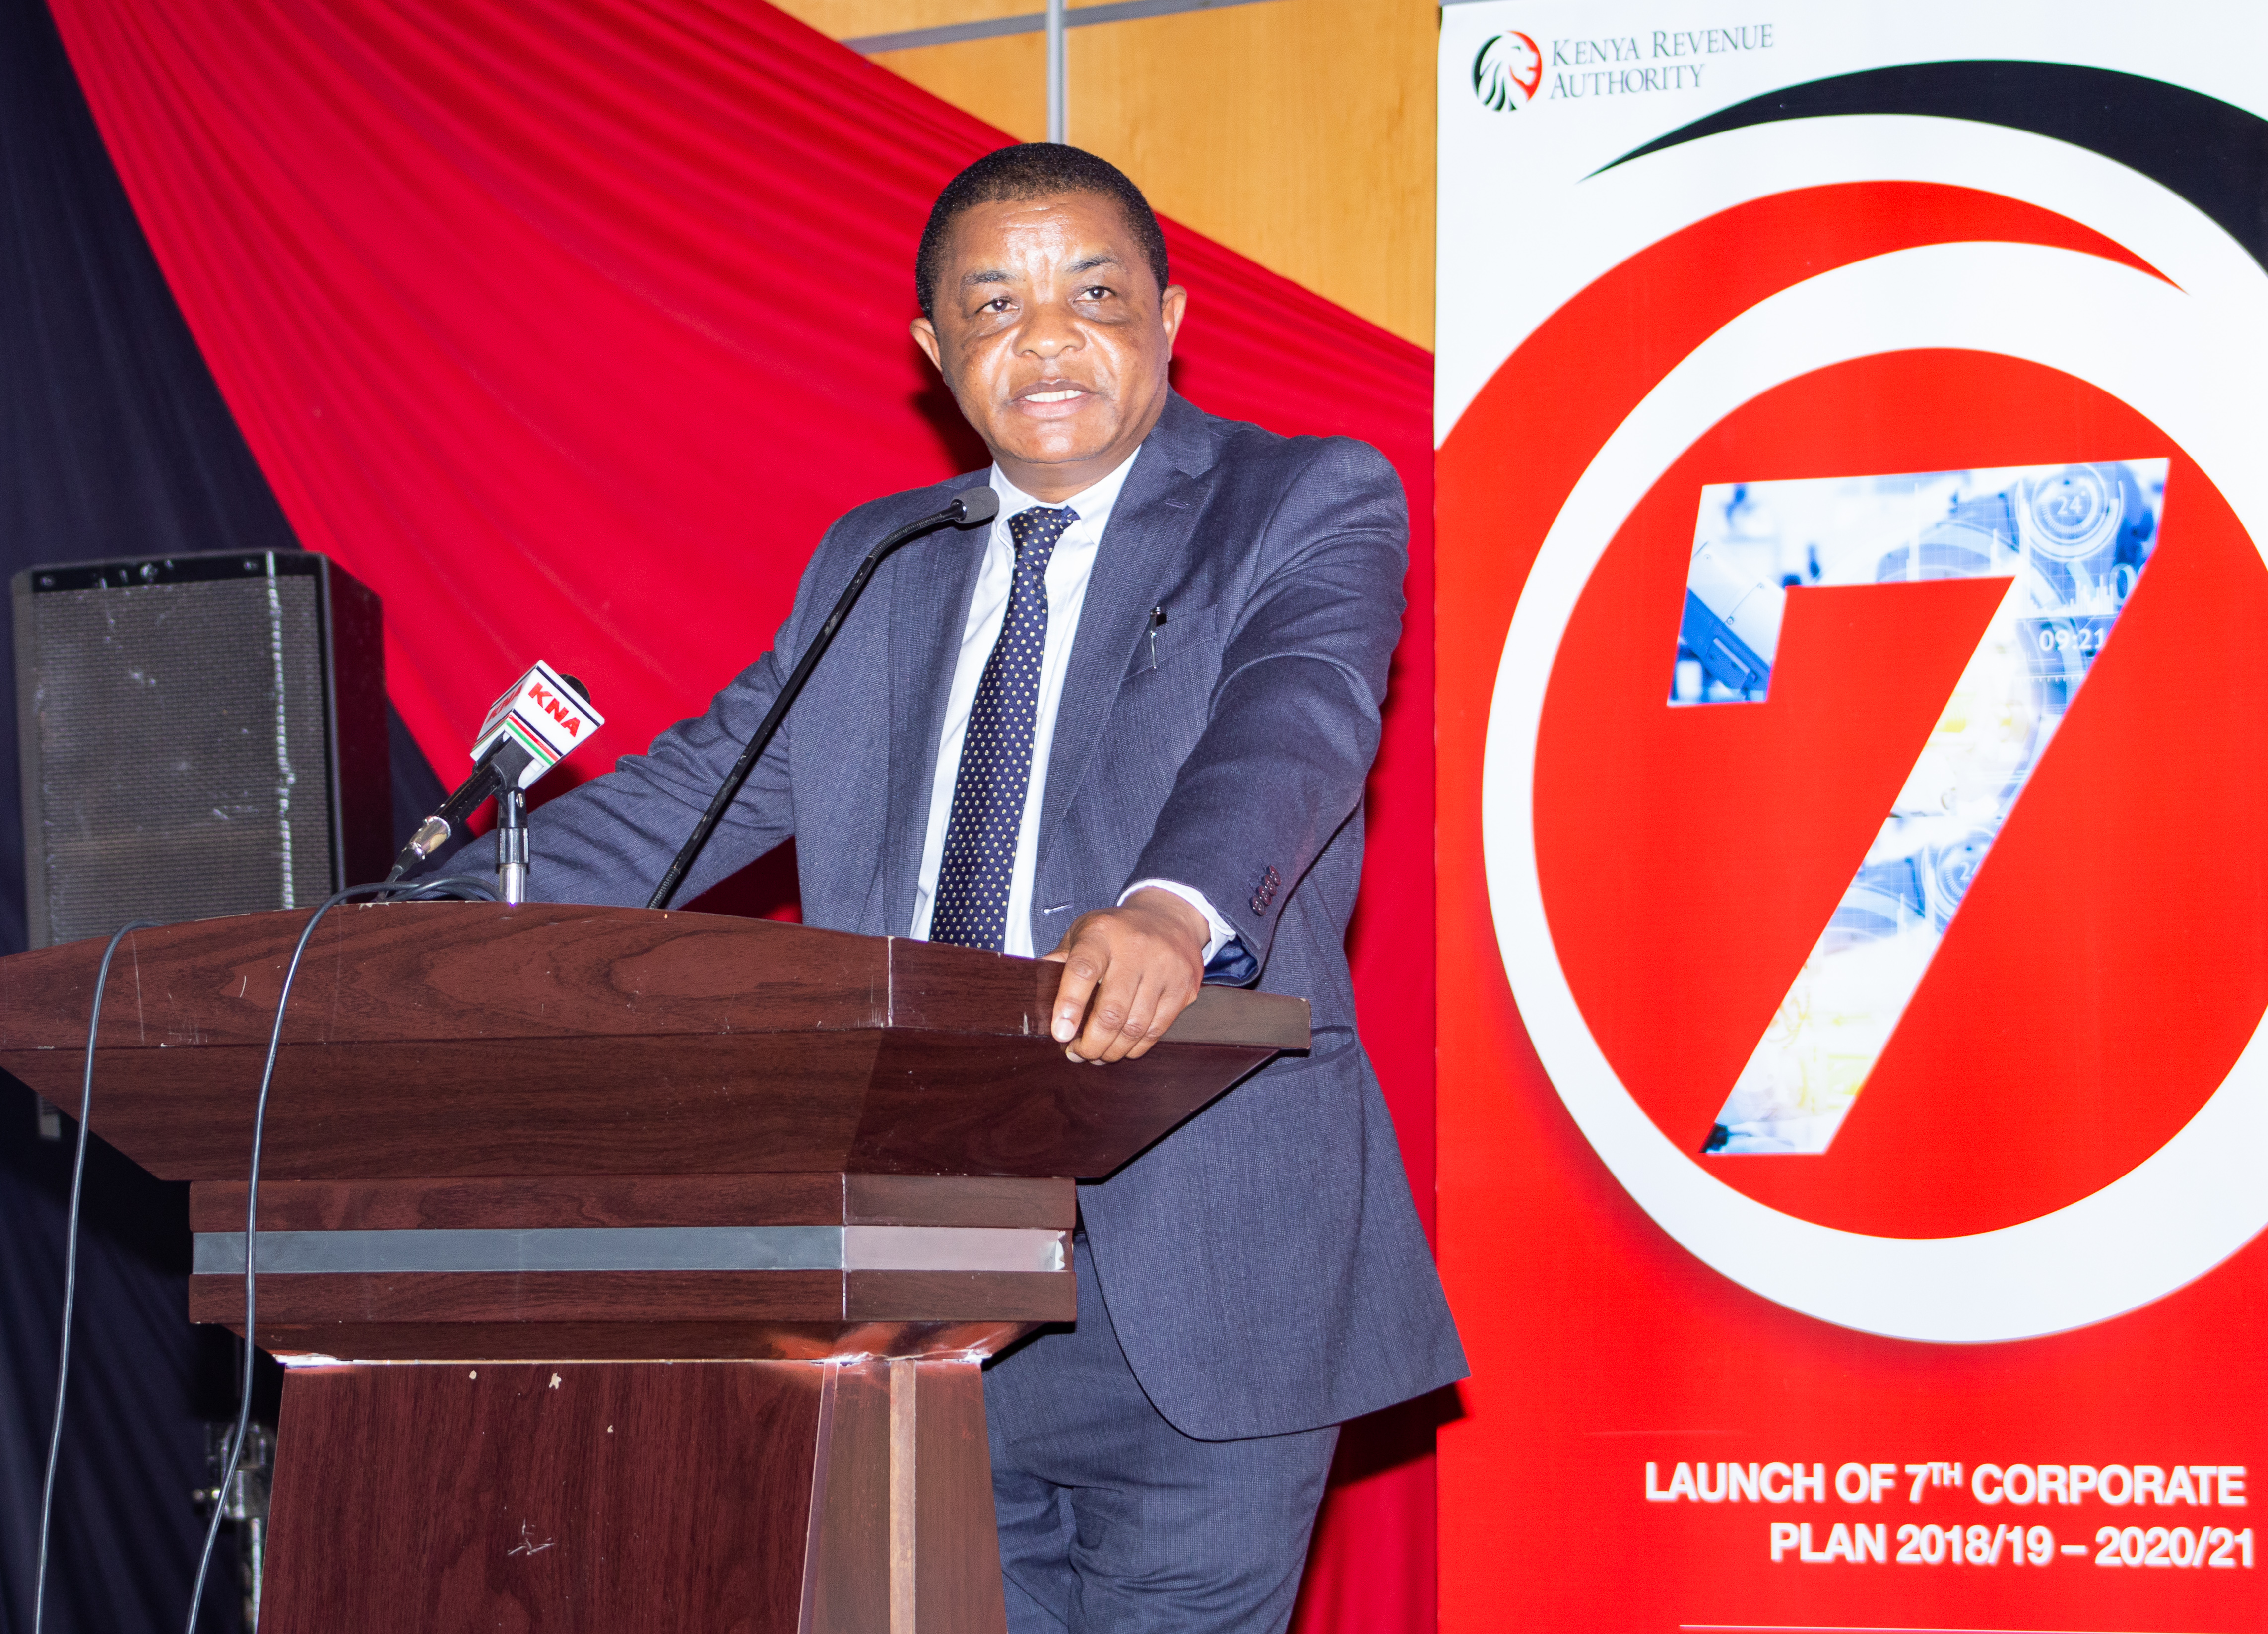 Unmasking the taxman's ambitious 7th corporate plan